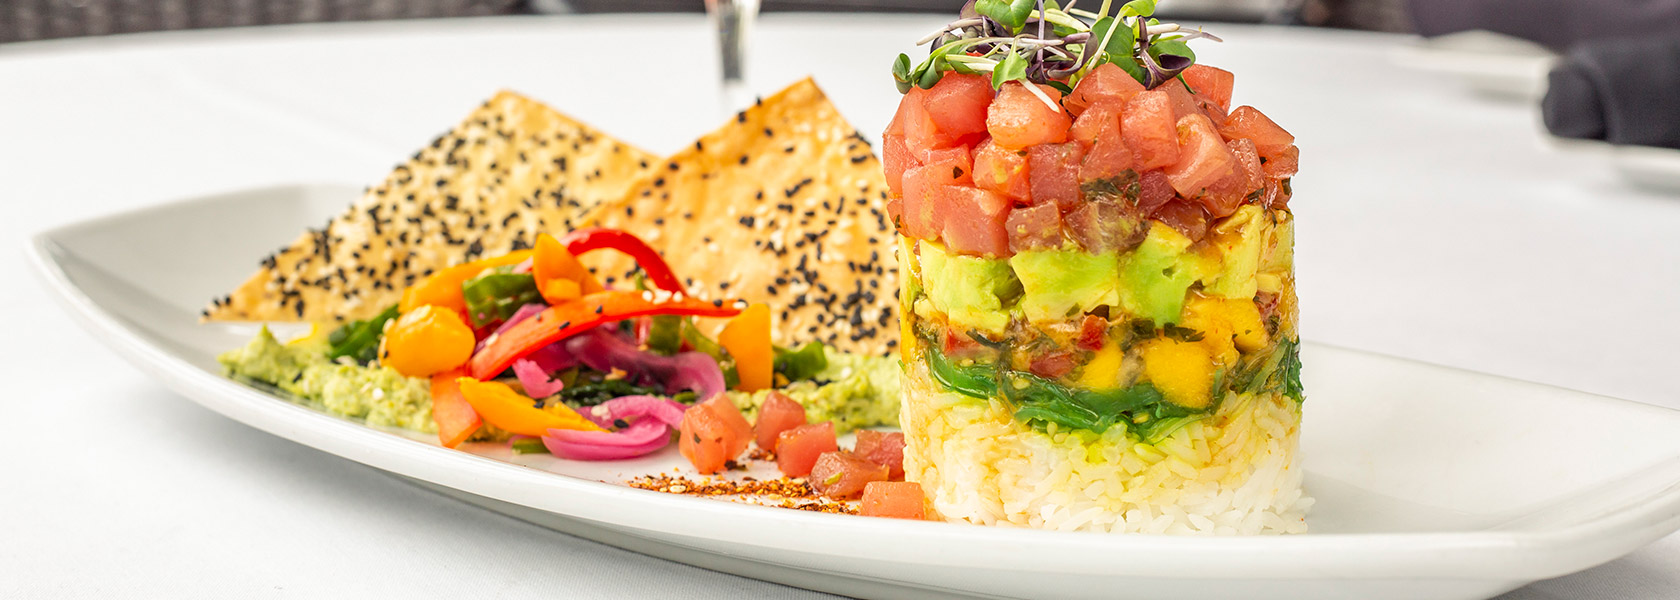 Tucci's Tuna stack entree with avocado and seeded chips